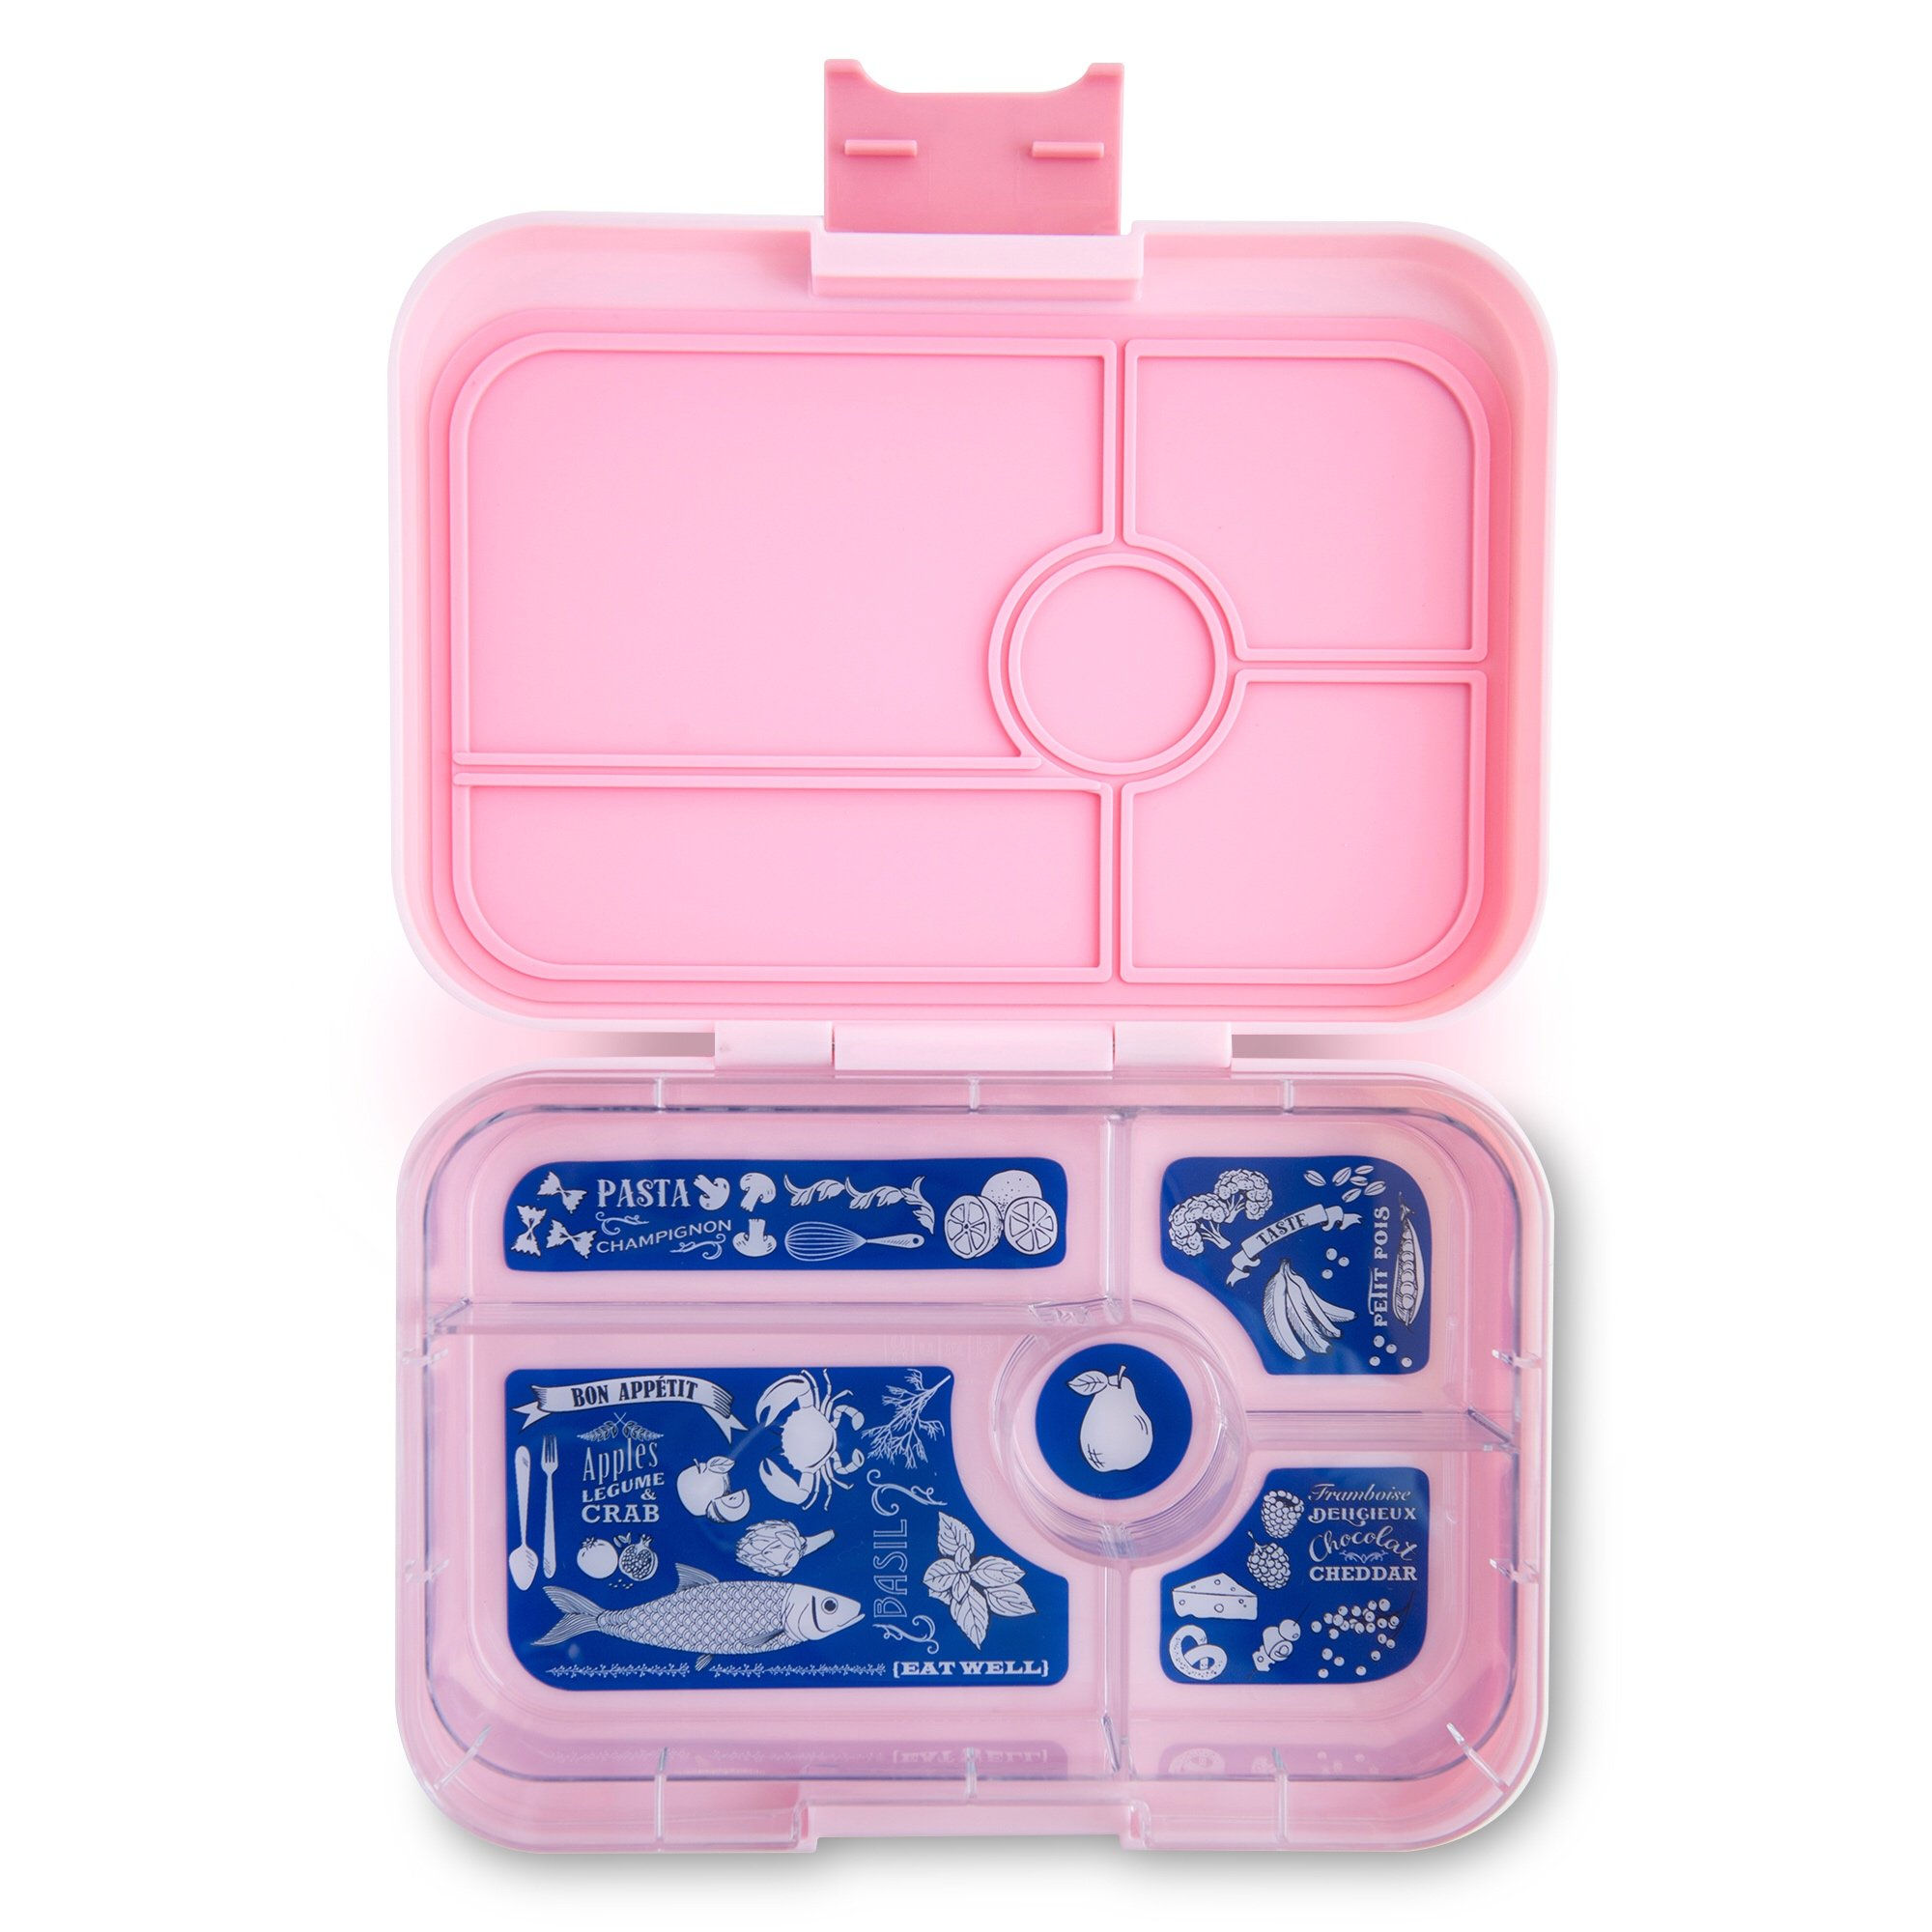 YUMBOX TAPAS Larger Size (Amalfi Pink) Leakproof Bento lunch box for Adults, Teens & Pre-teens